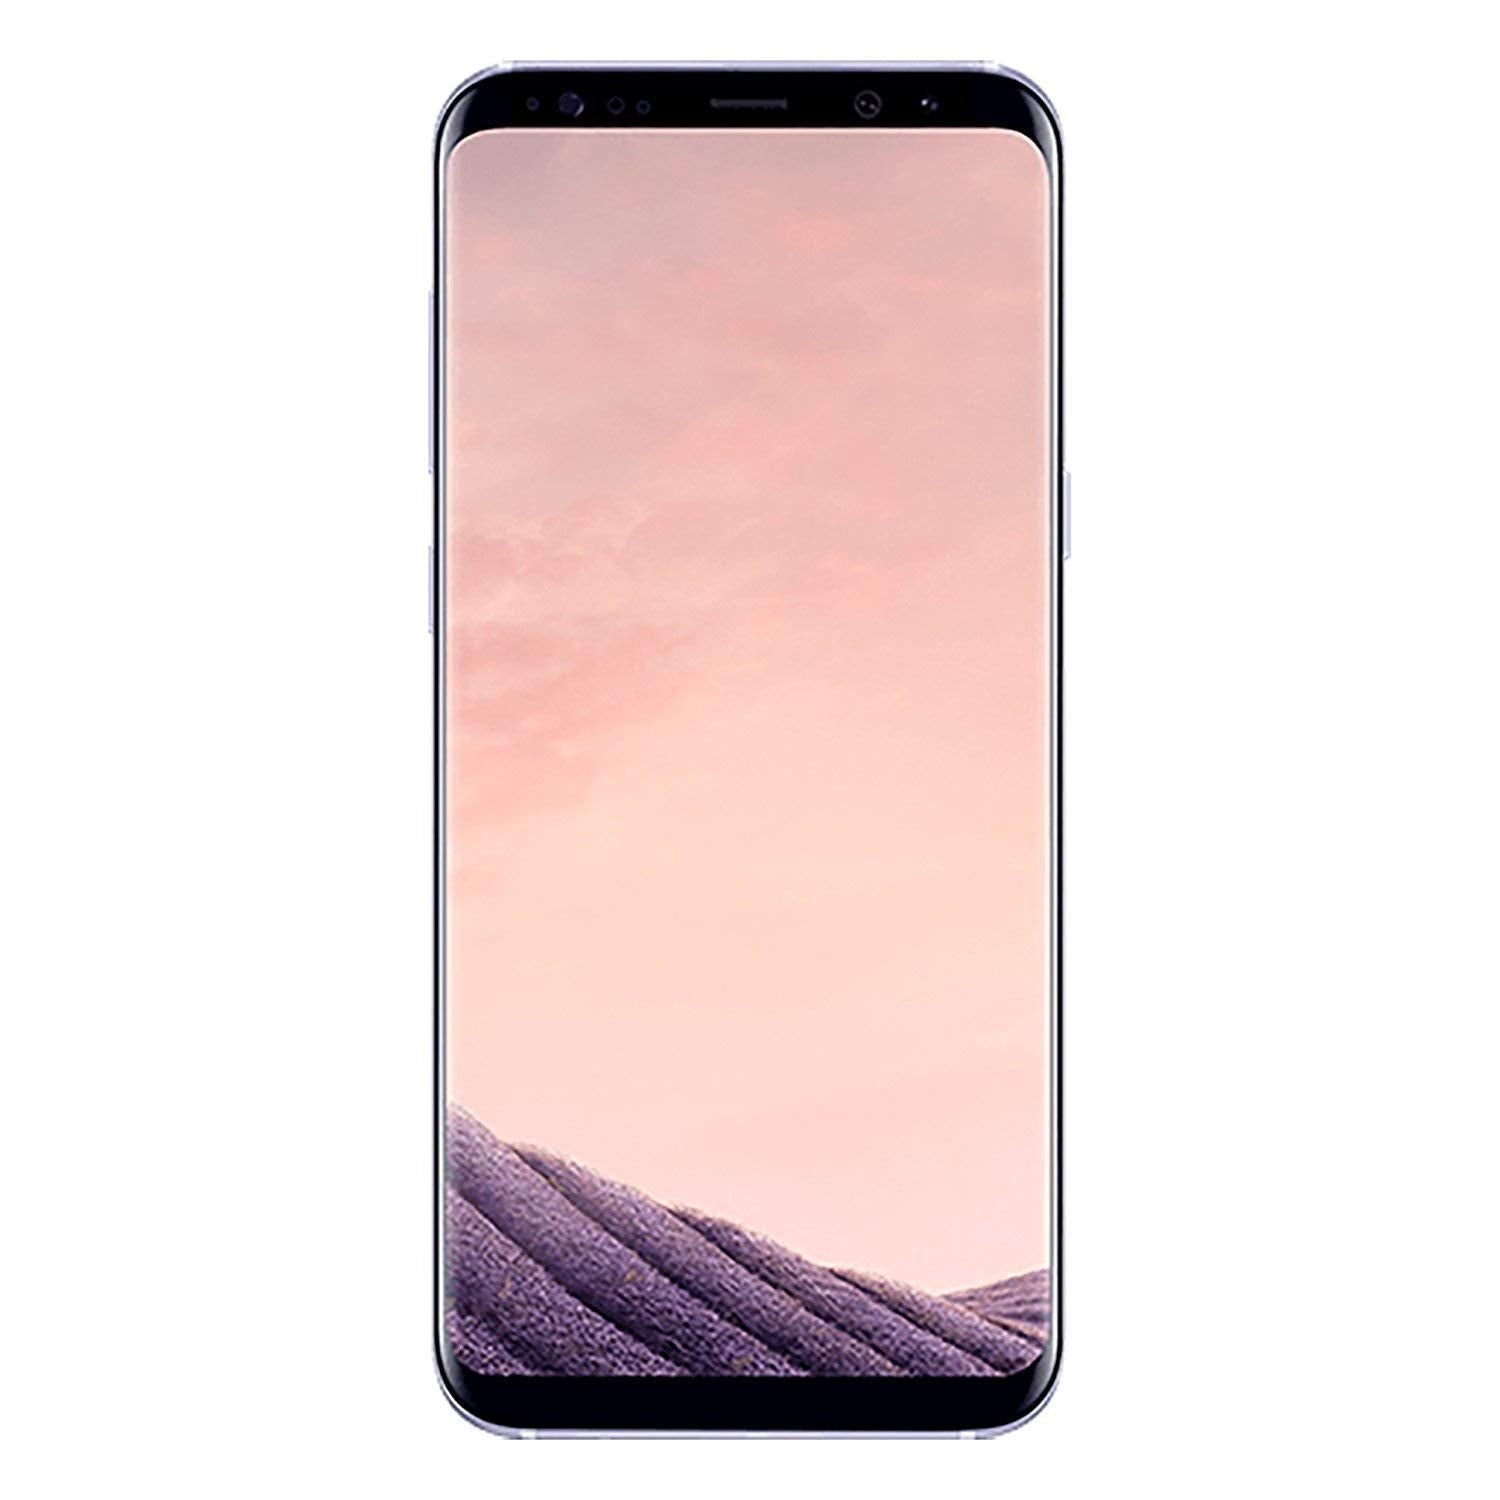 "Samsung Galaxy S8 (G950u GSM only) 5.8"" 64GB, Unlocked Smartphone for all GSM Carriers - Midnight Black"